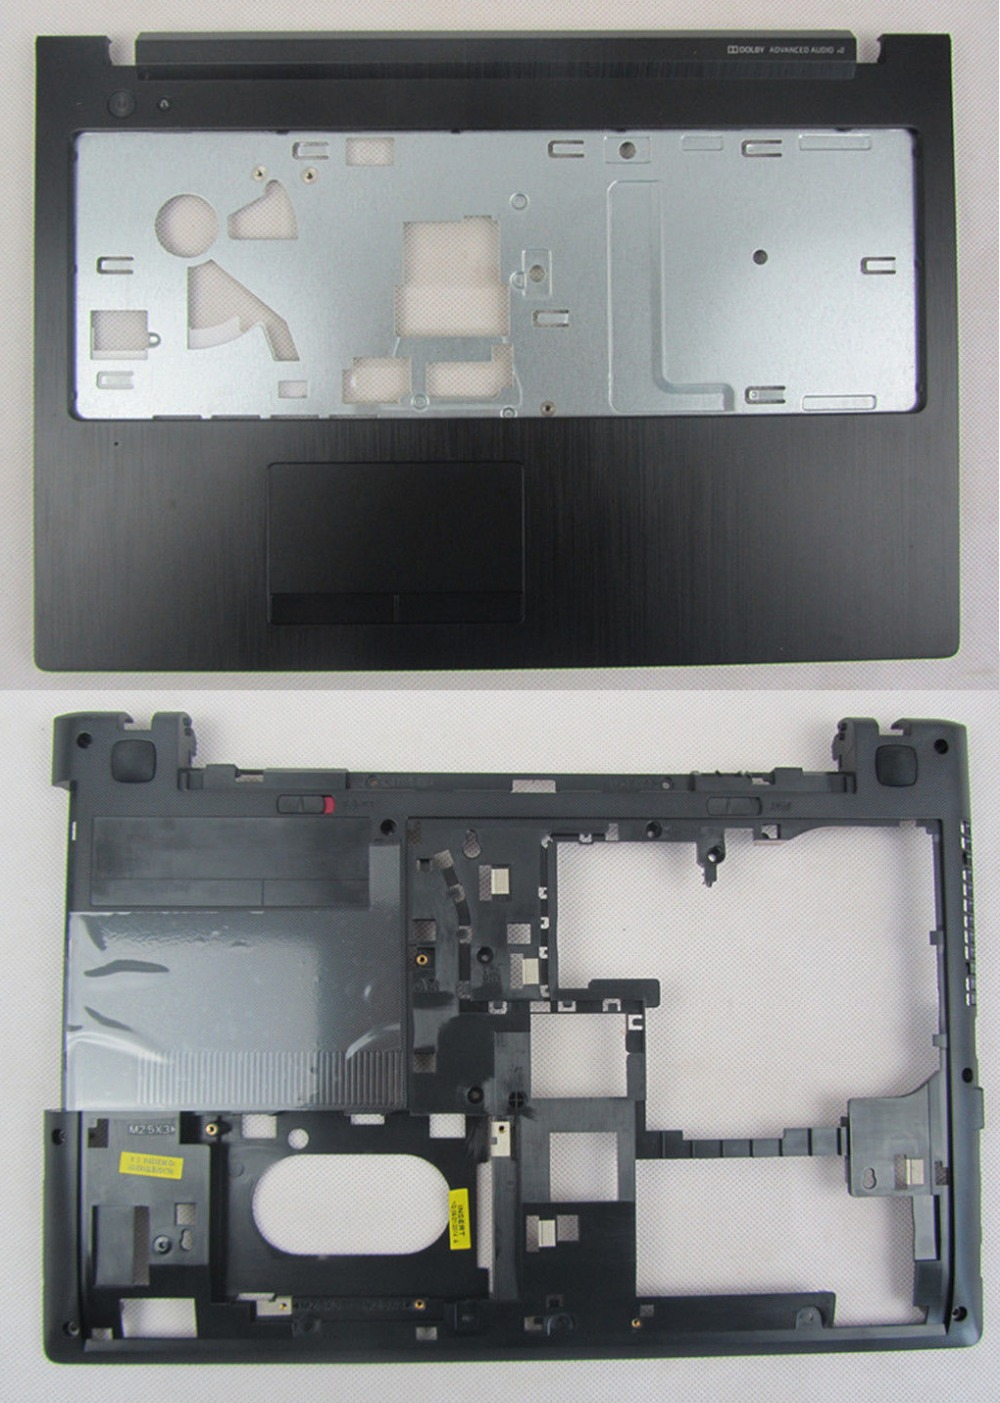 New Lenovo G500S G505S AP0YB000H00 Bottom Base Cover & Palmrest Upper Case AP0YB000I10 Combo new for lenovo g500s g505s laptop bottom case base cover ap0yb000h00 laptop replace cover